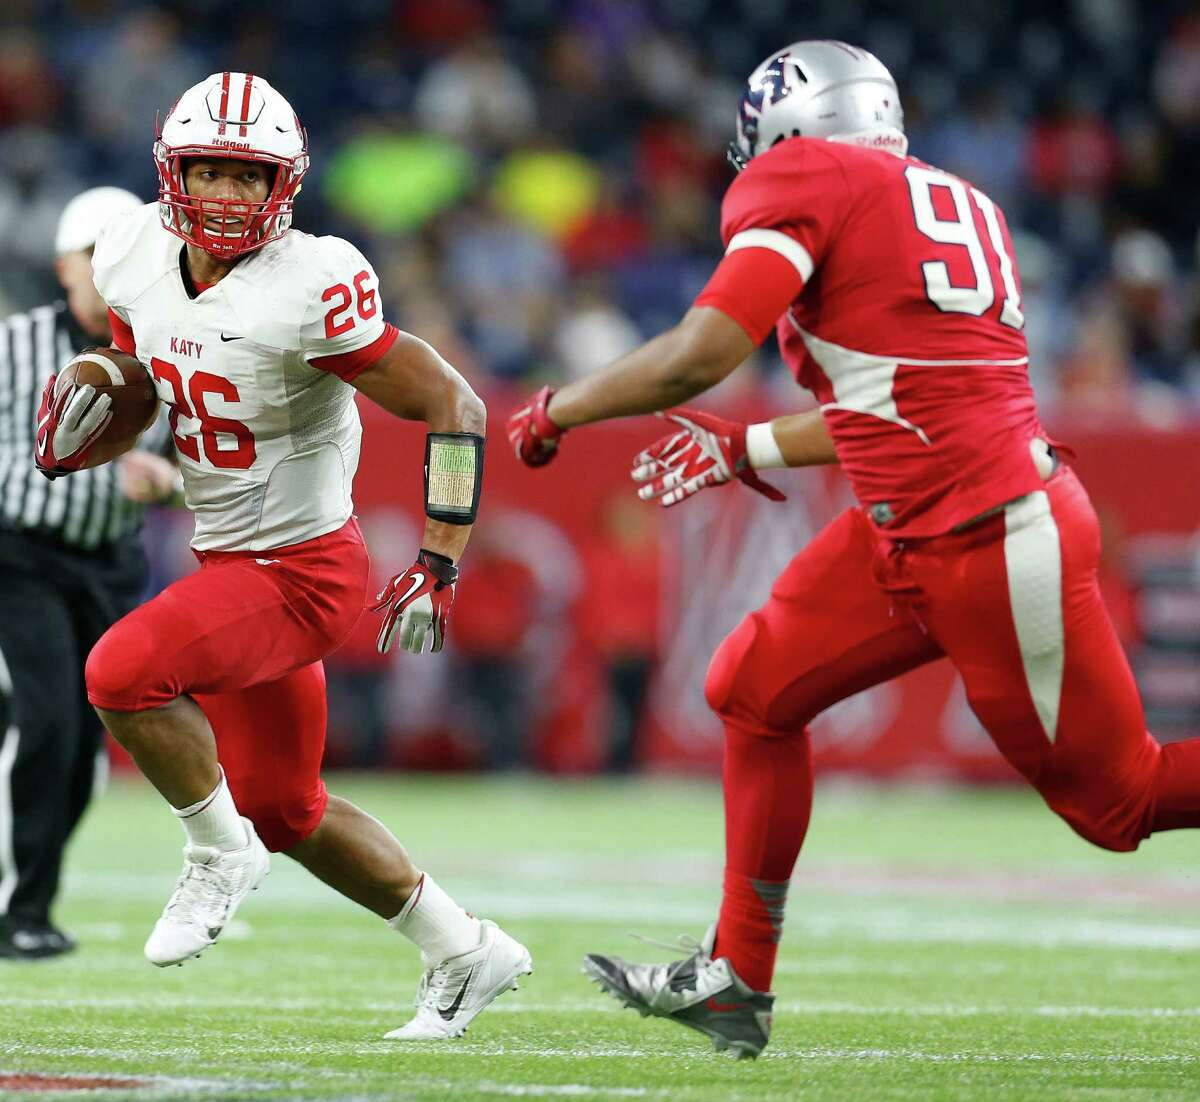 After meeting in last year's playoffs, Katy and Manvel figure to be among the Greater Houston Area's top teams once again in 2015.Click through the gallery to see the Chronicle's 2015 preseason rankings.